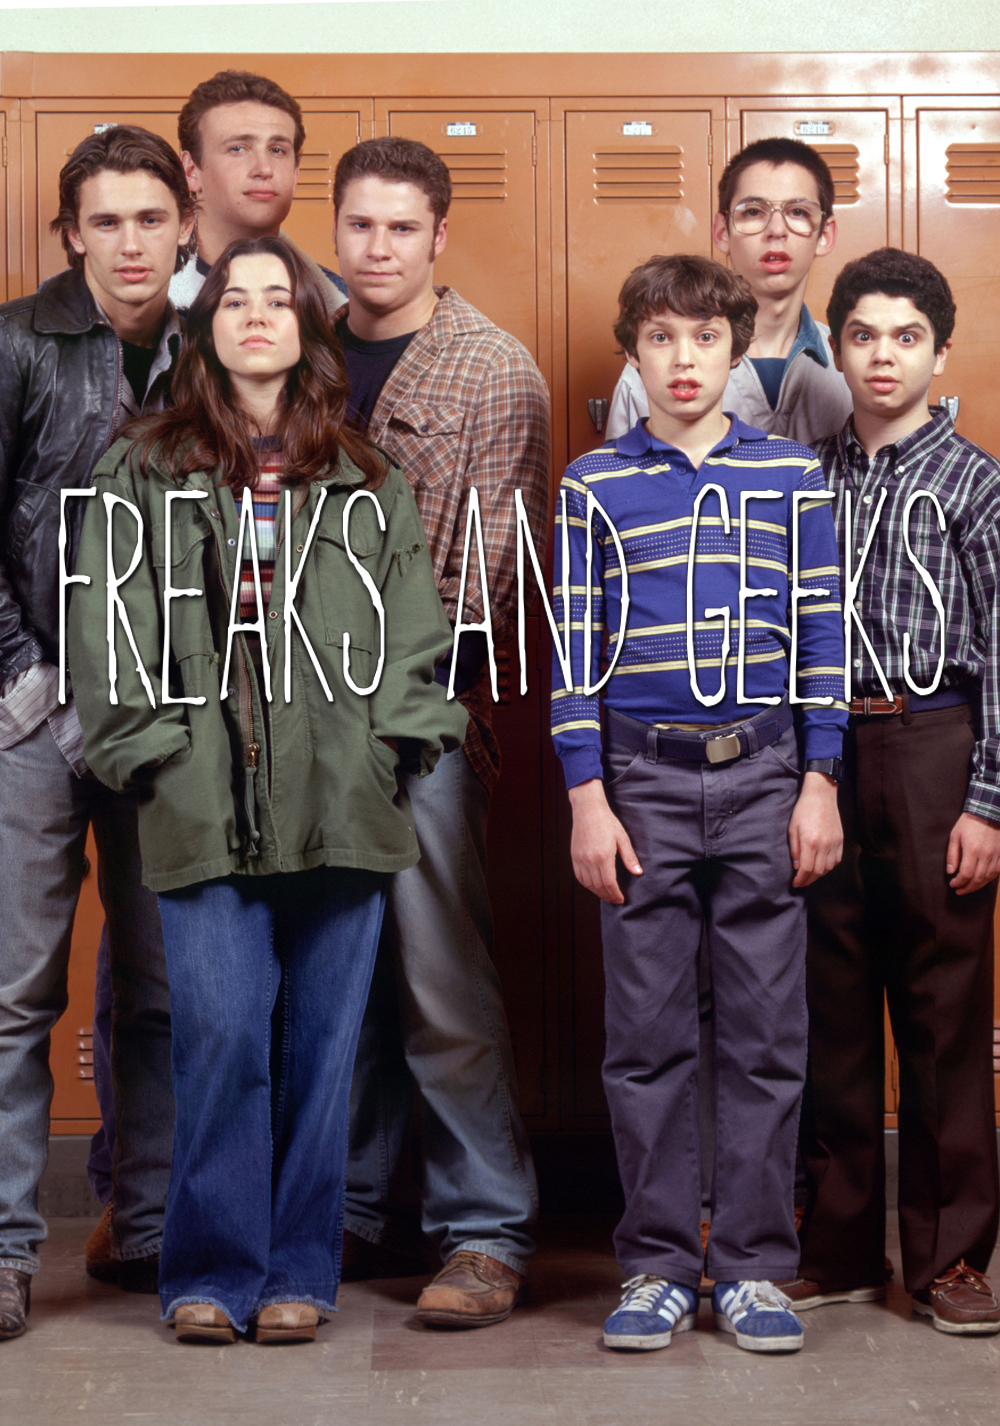 Freaks and Geeks Season 1 COMPLETE BluRay 480p, 720p & 1080p